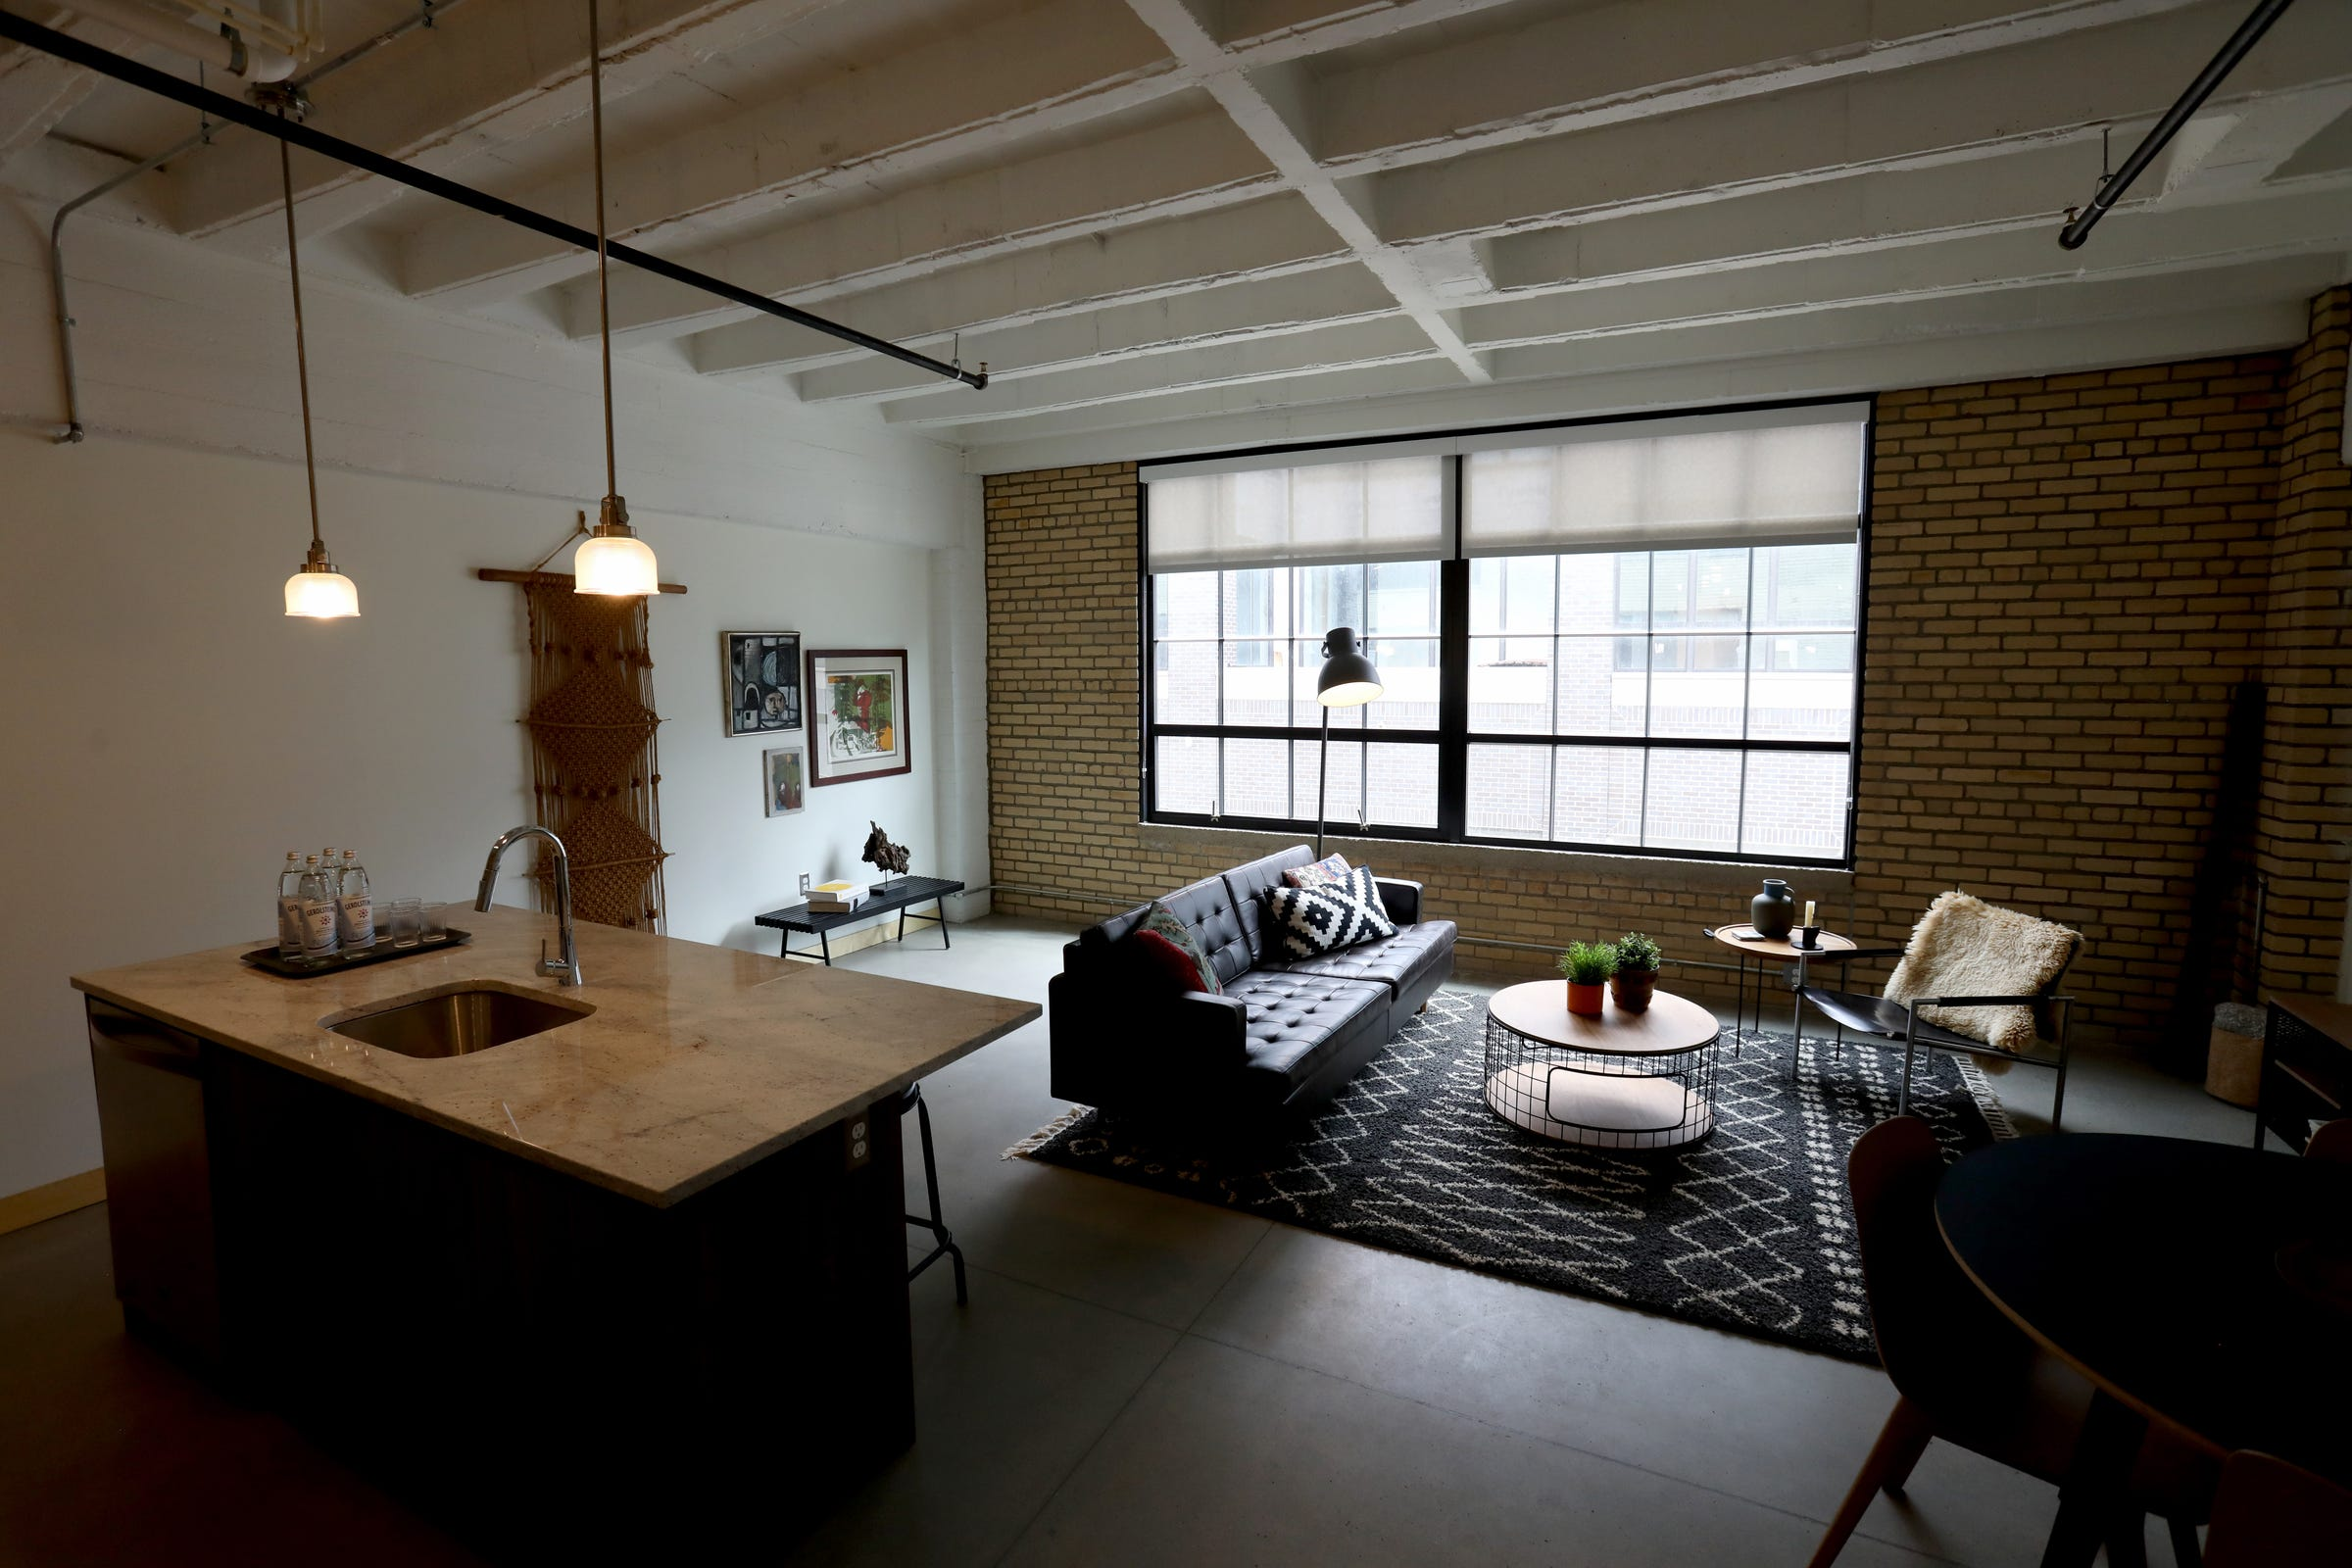 A model one-bedroom apartment with an open kitchen and living area inside the Checker Building.